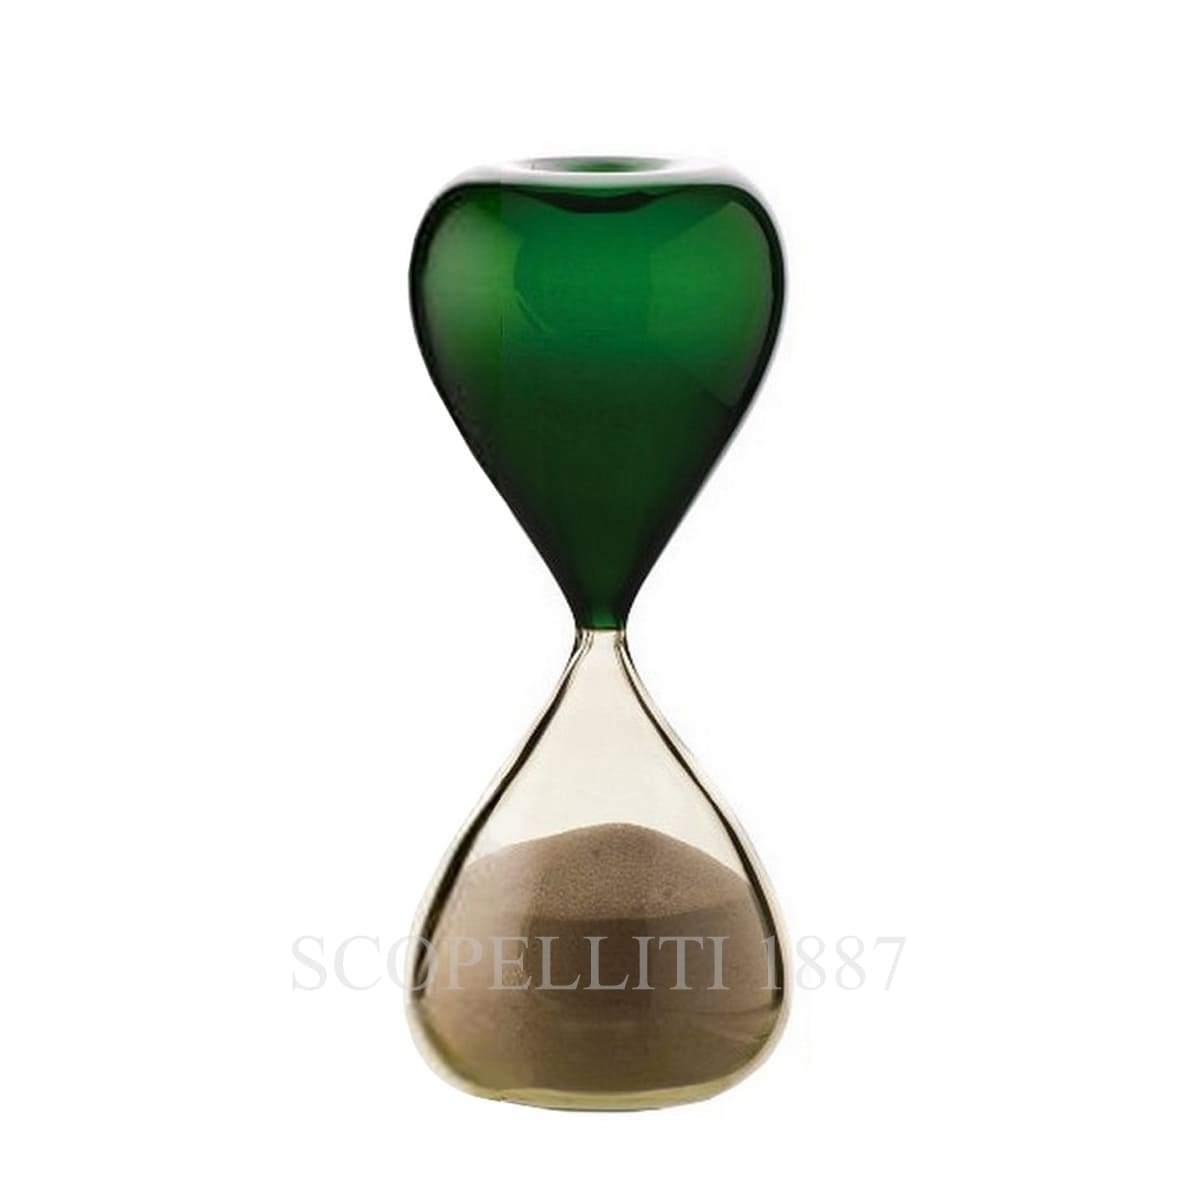 venini clessidre hourglass italian design green apple straw yellow limited edition